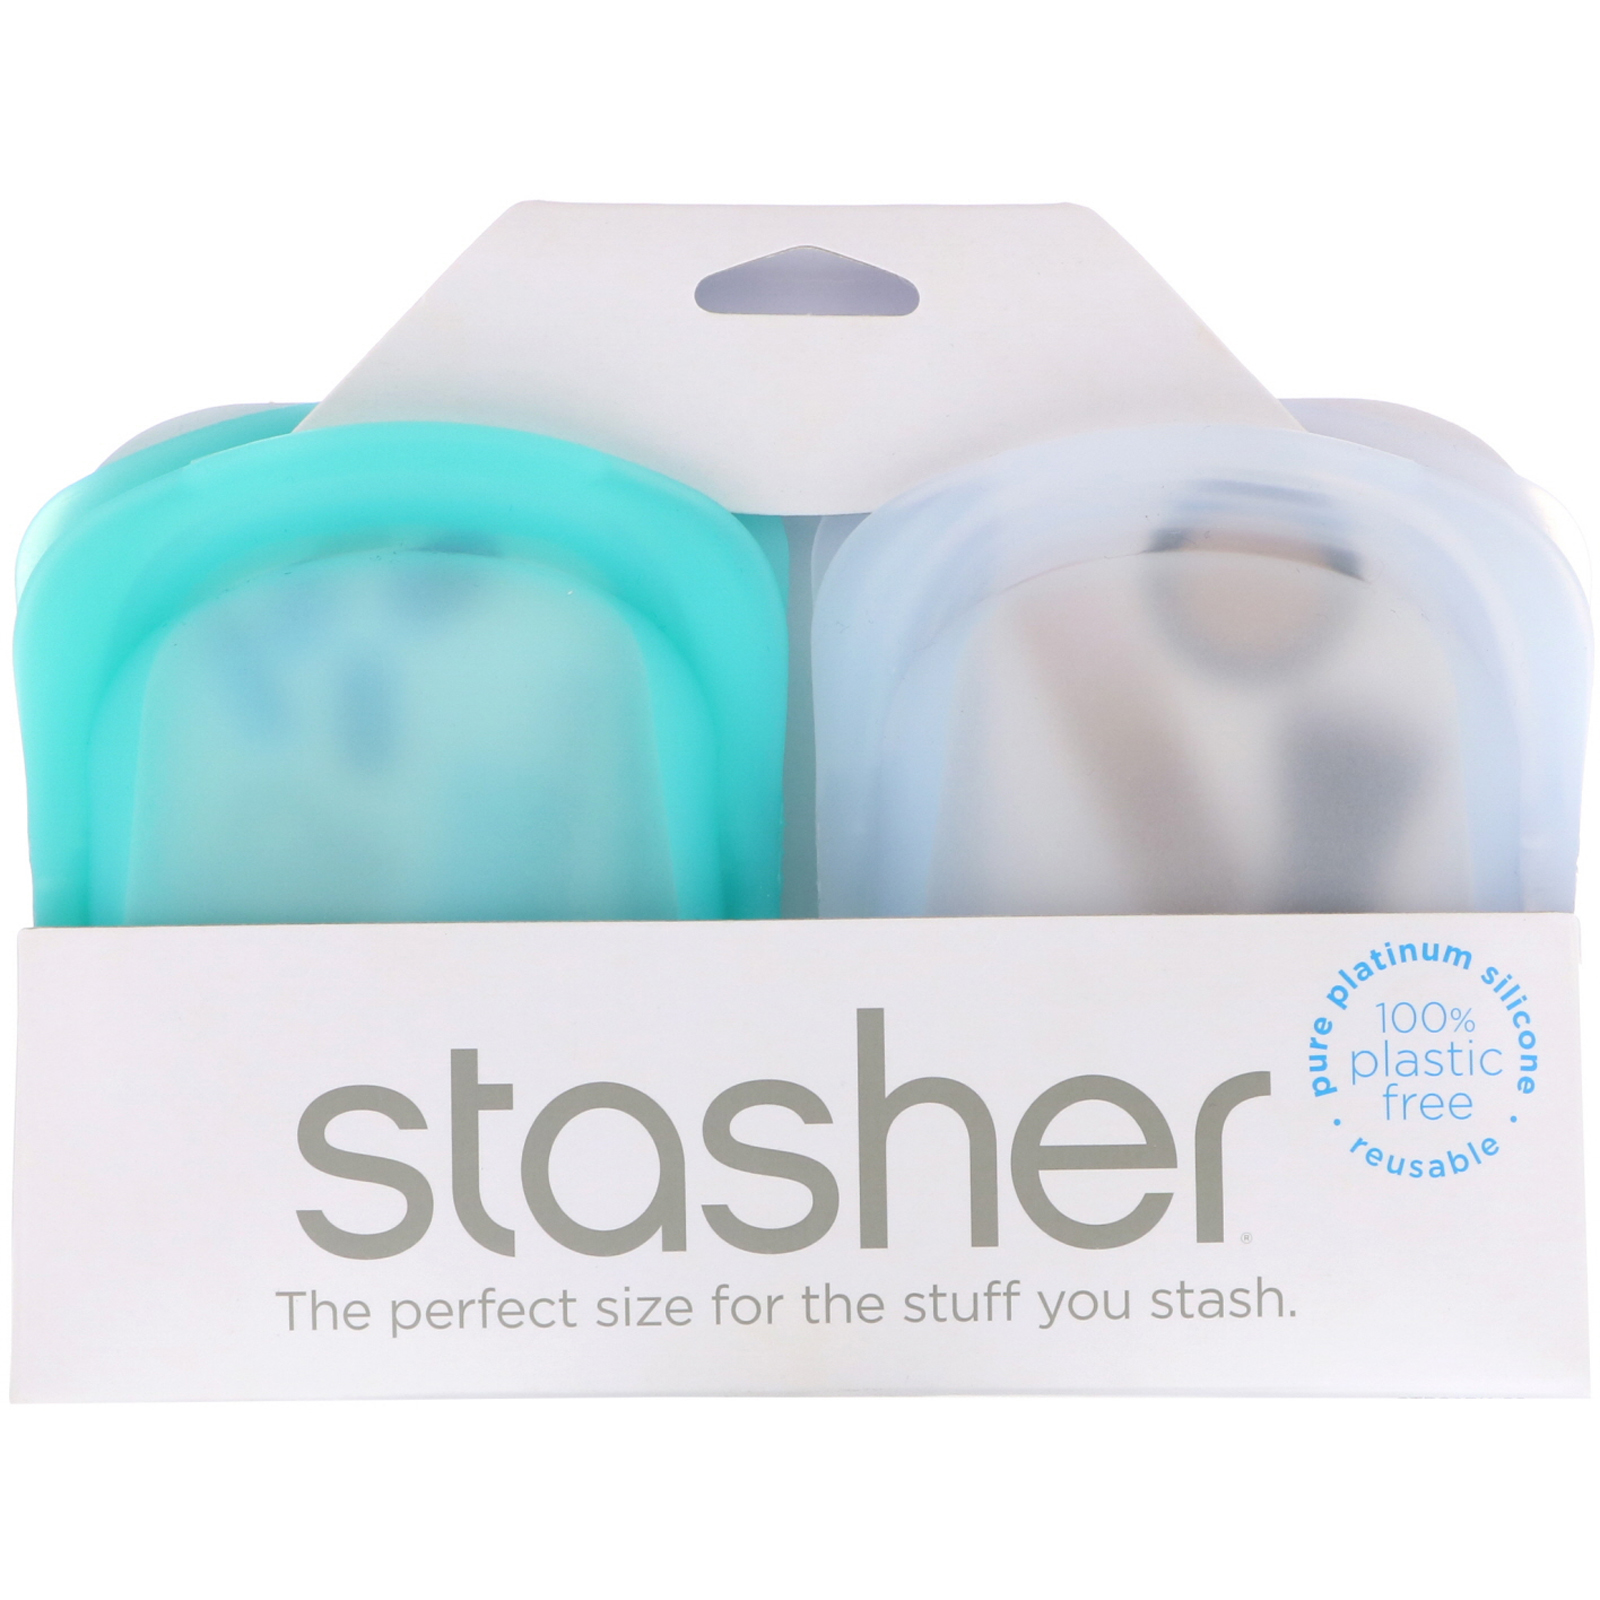 set of two Stasher 4 oz. bags